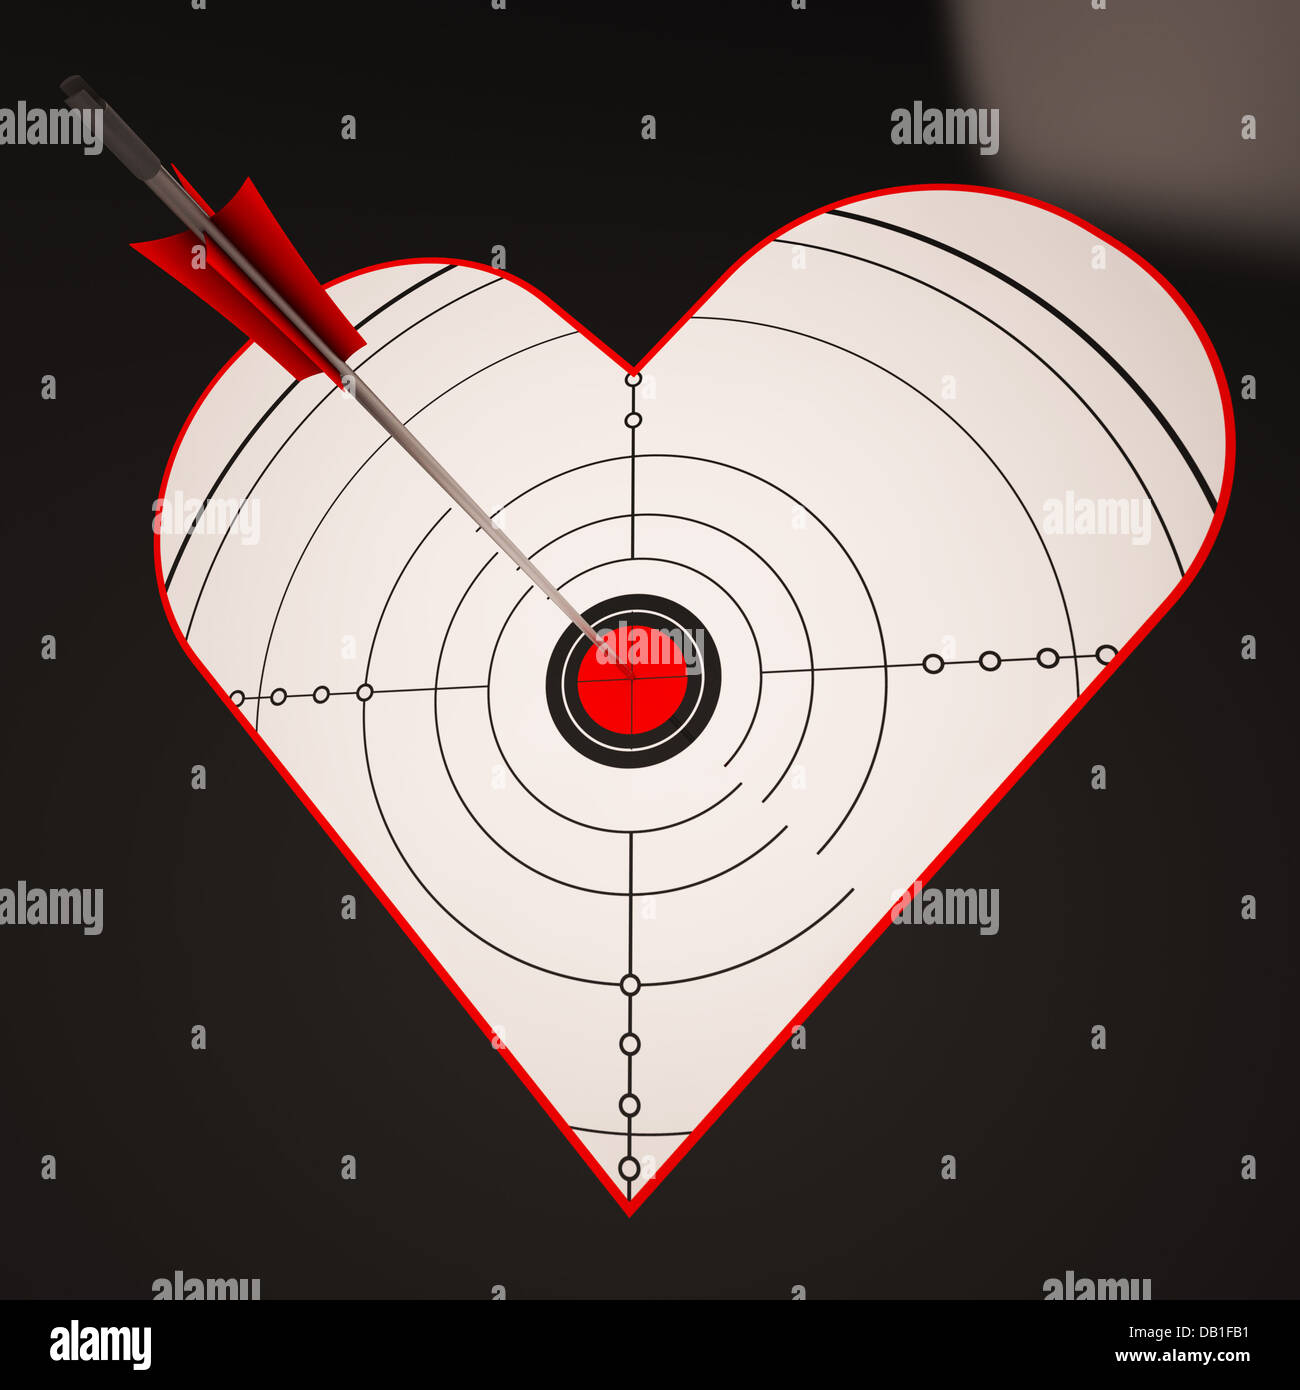 Heart Target Shows Successful Winner In Love - Stock Image